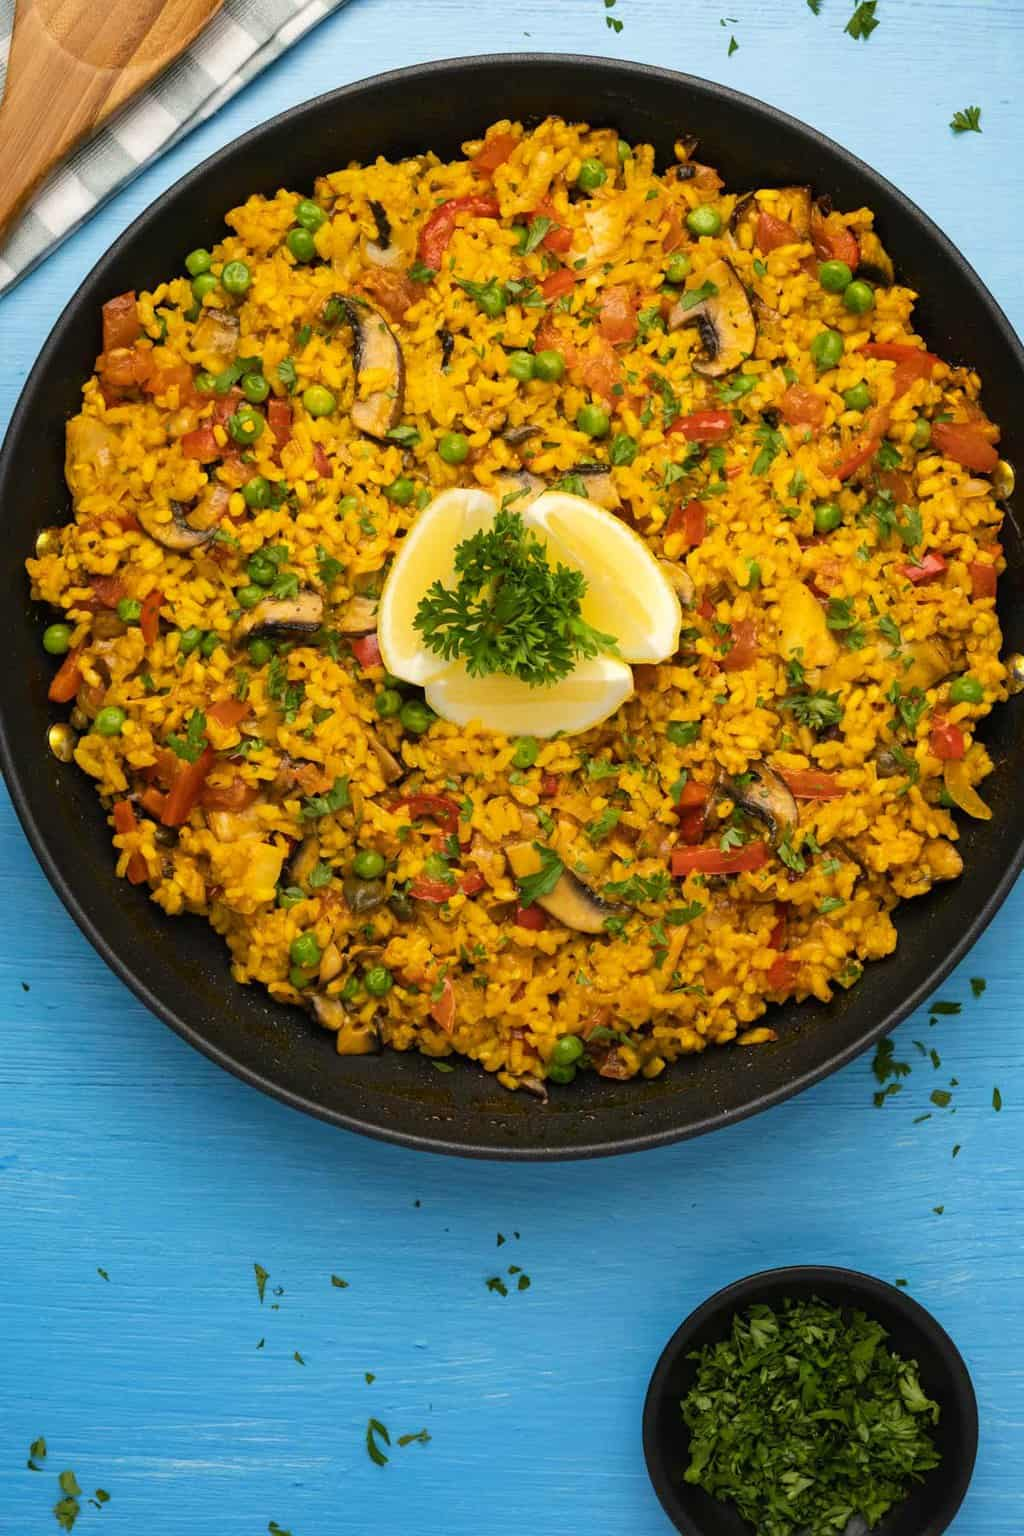 Vegetable paella in a paella pan with lemon wedges and parsley.